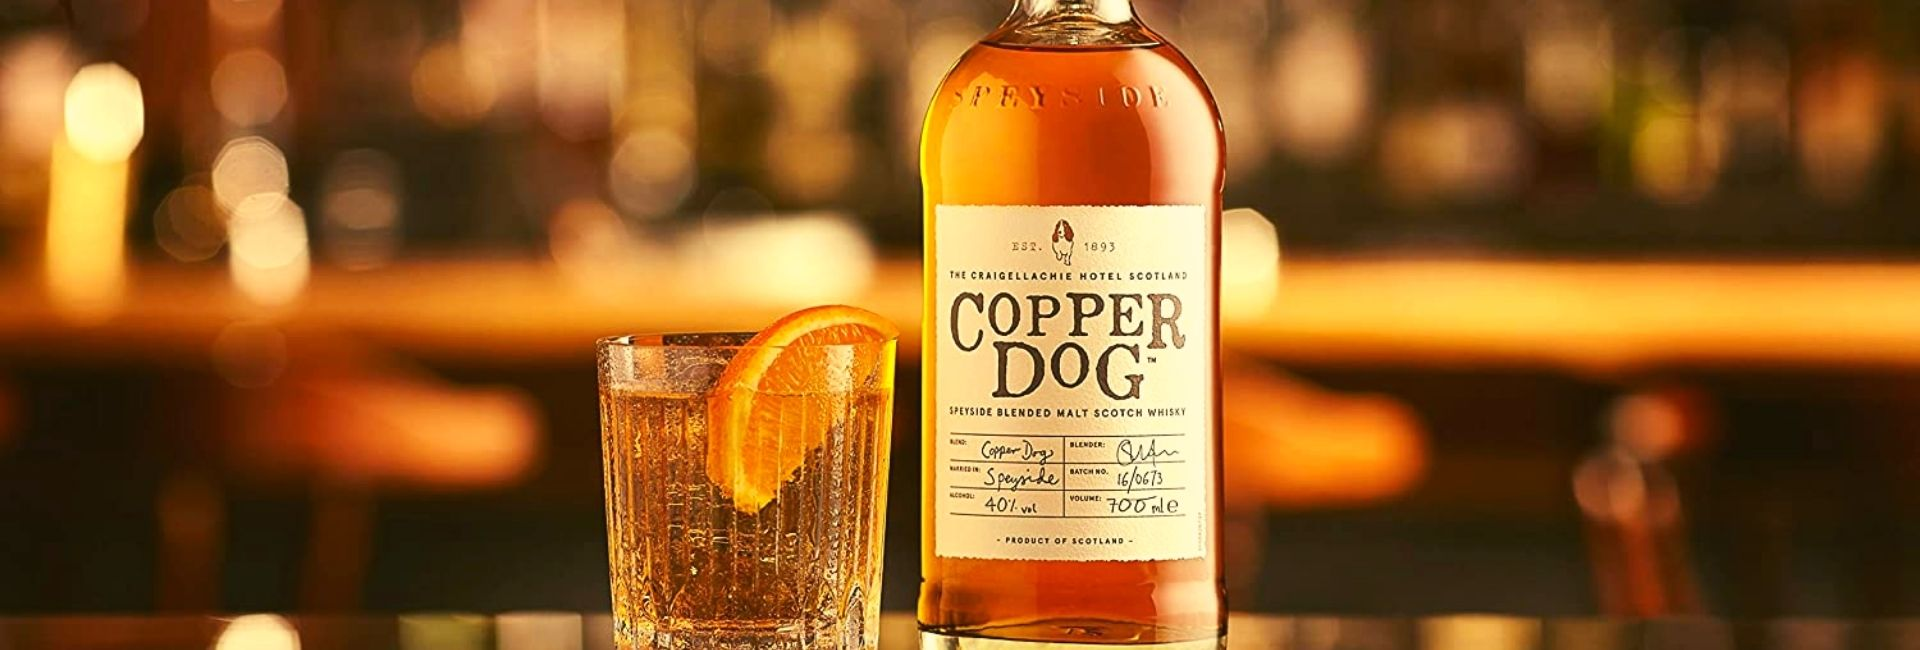 Copper Dog Speyside Blended Malt Scotch Whisky Review